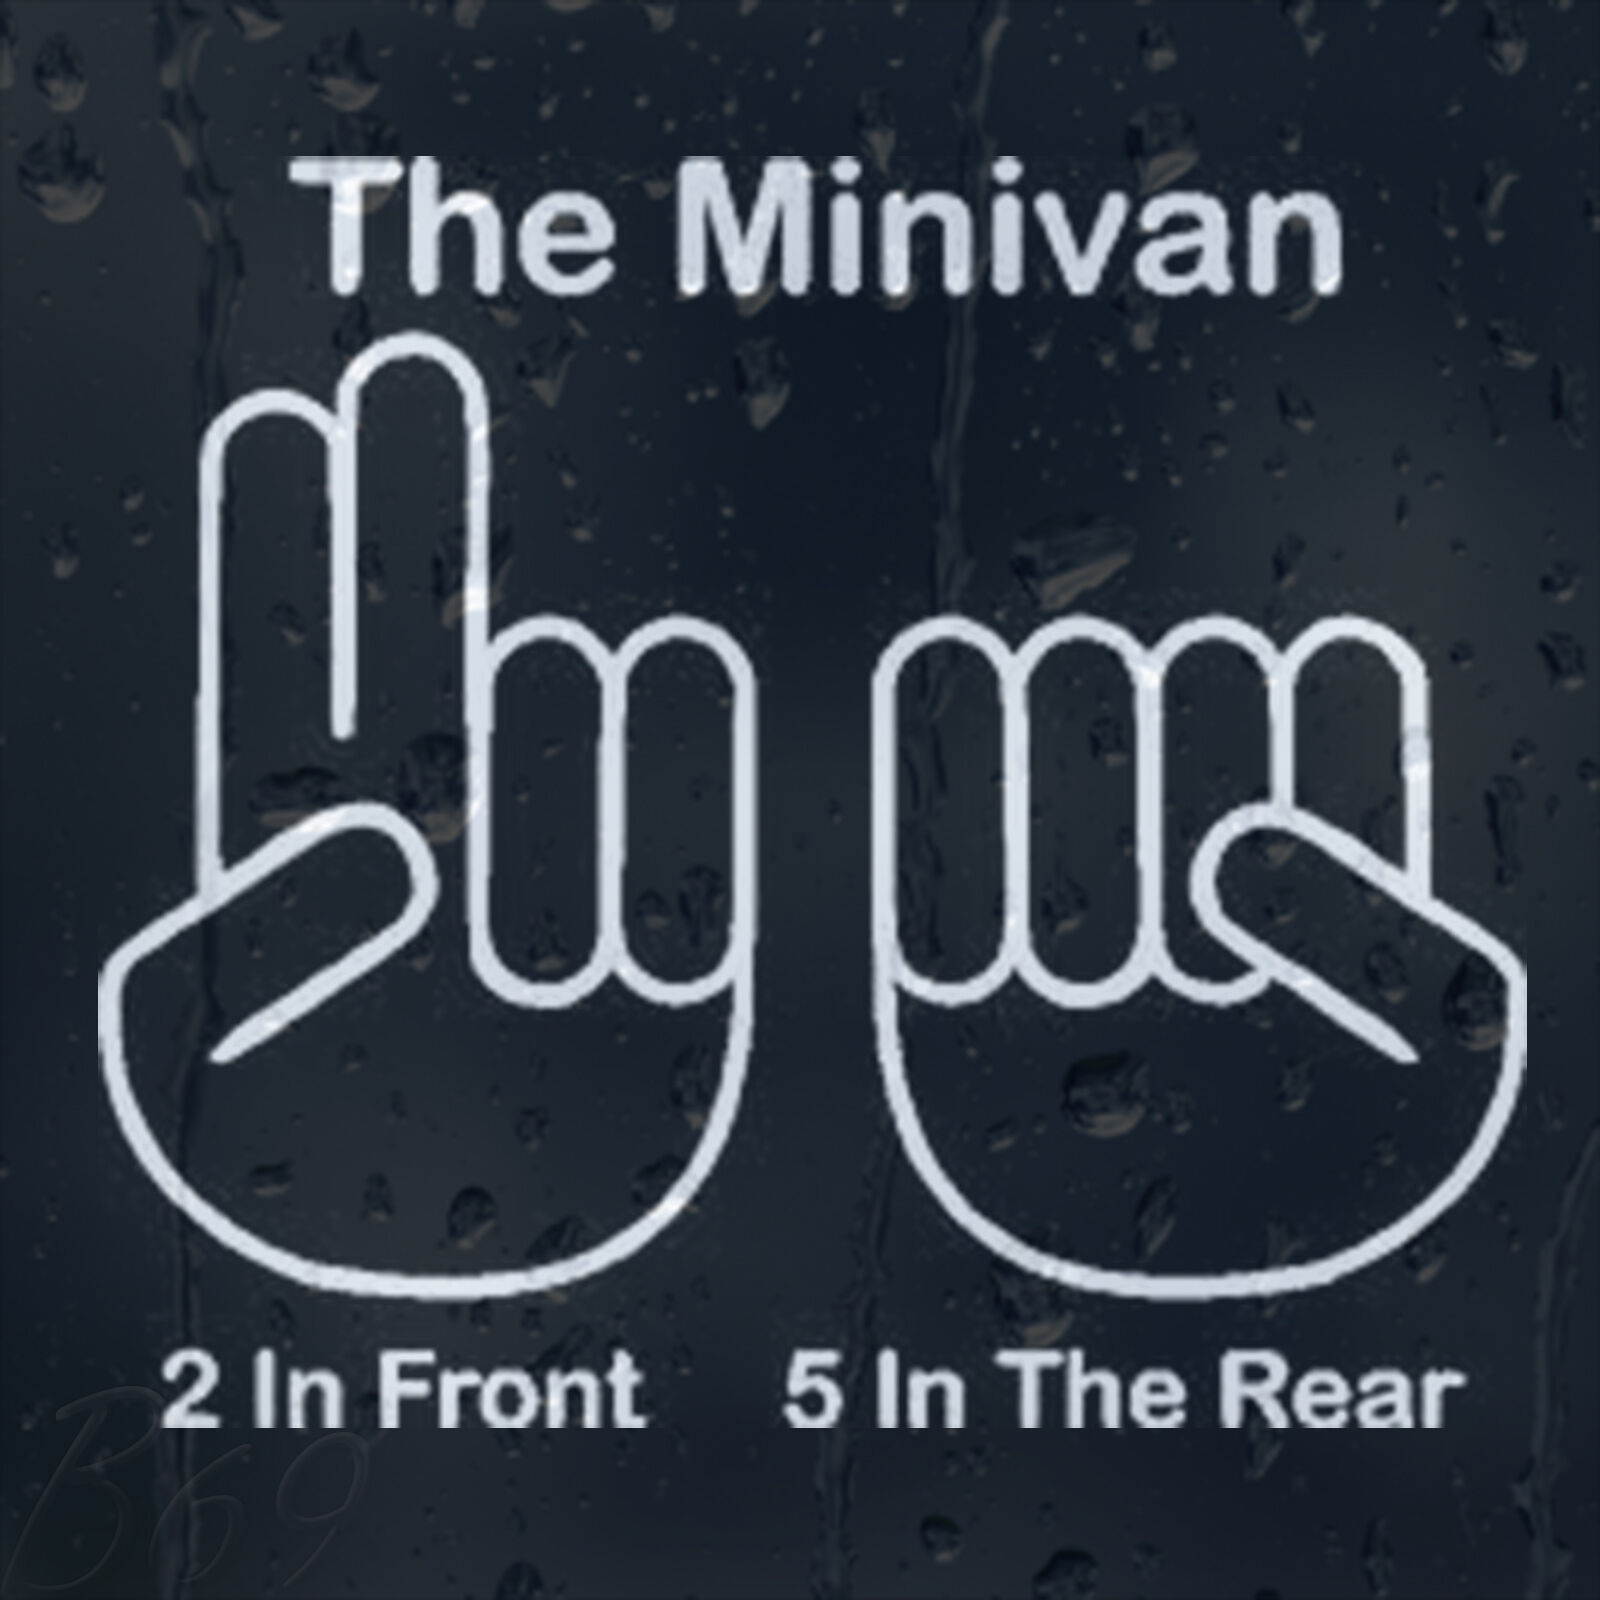 Or the minivan